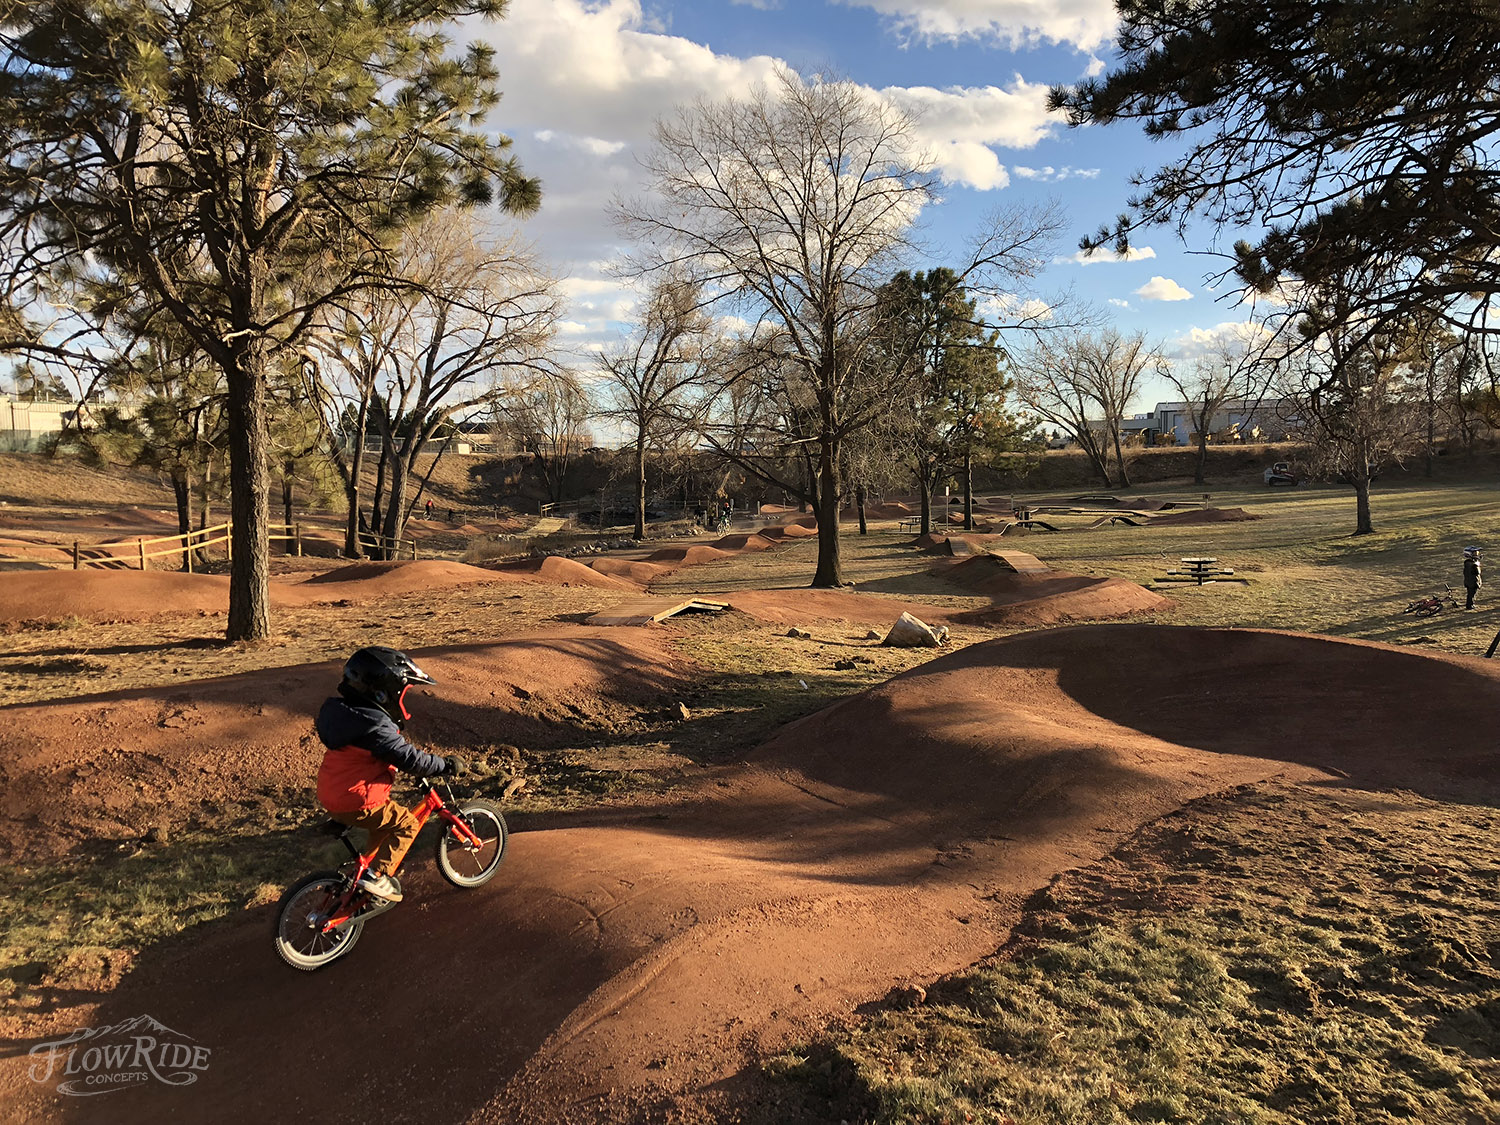 El Pomar Youth Bike Park - Young bicyclists now have three acres dedicated to helping them develop confidence and competence. A new youth bike park, adjacent to Hillside Community Center, includes a street skills course along with a mountain bike skills and obstacle course.